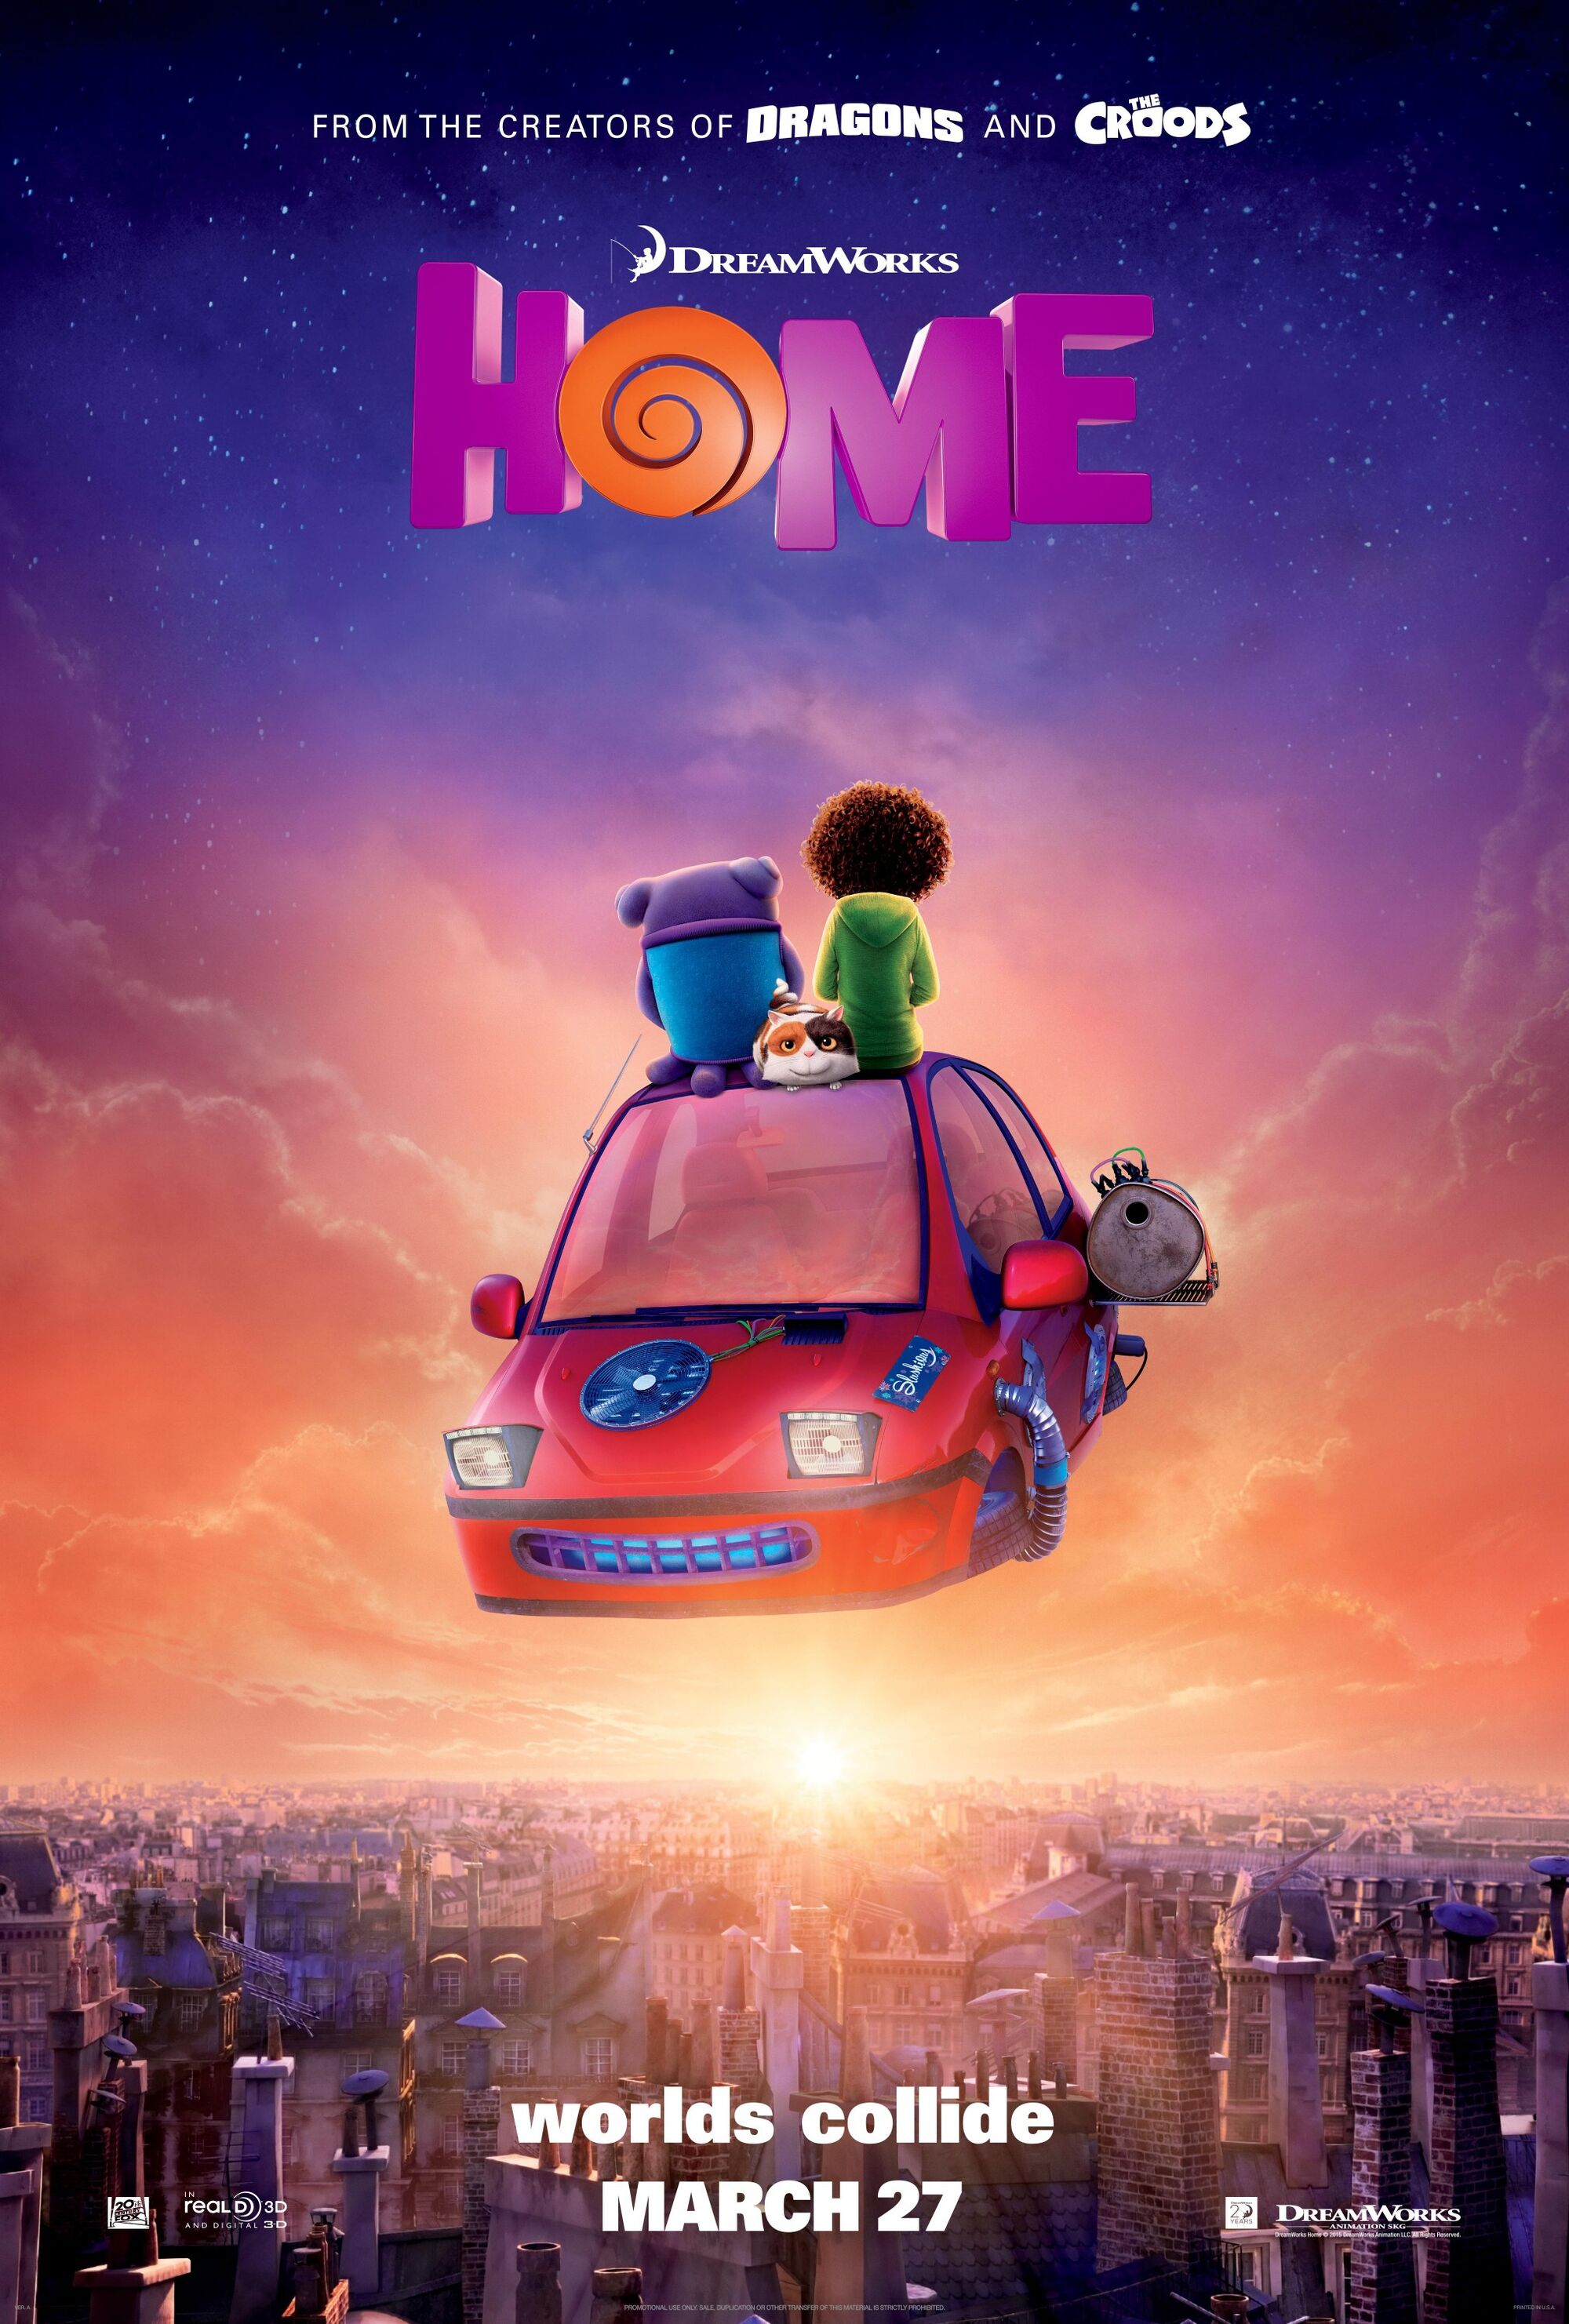 Kyle home dreamworks animation wiki fandom powered by wikia - Home Teaser Poster